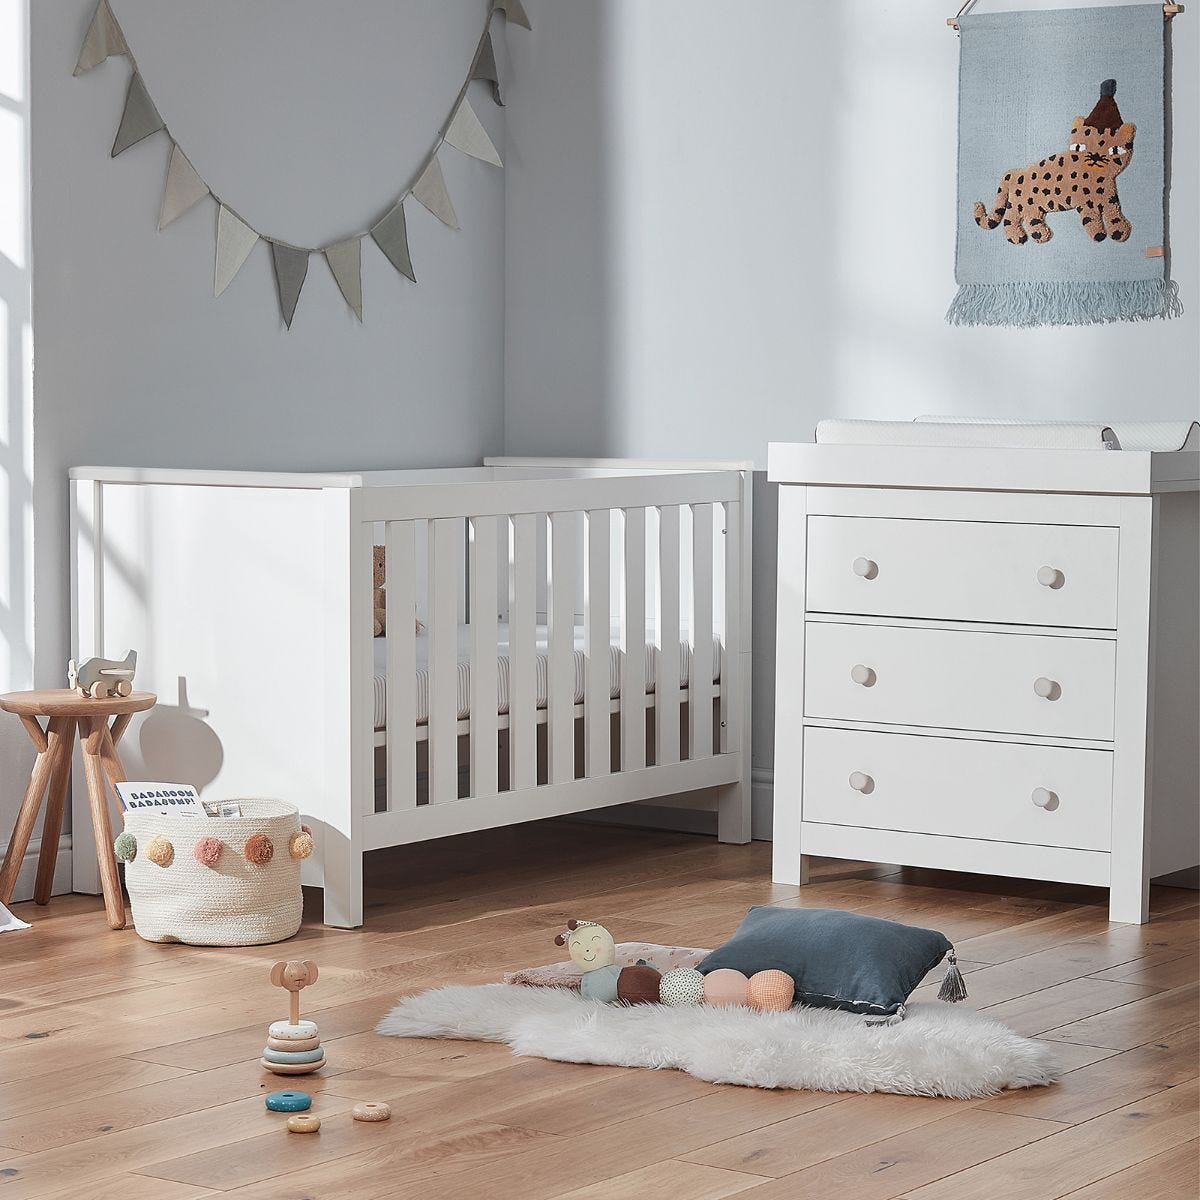 Cuddleco Aylesbury 2pc Set 3 Drawer Dresser and Changer and Cot Bed White